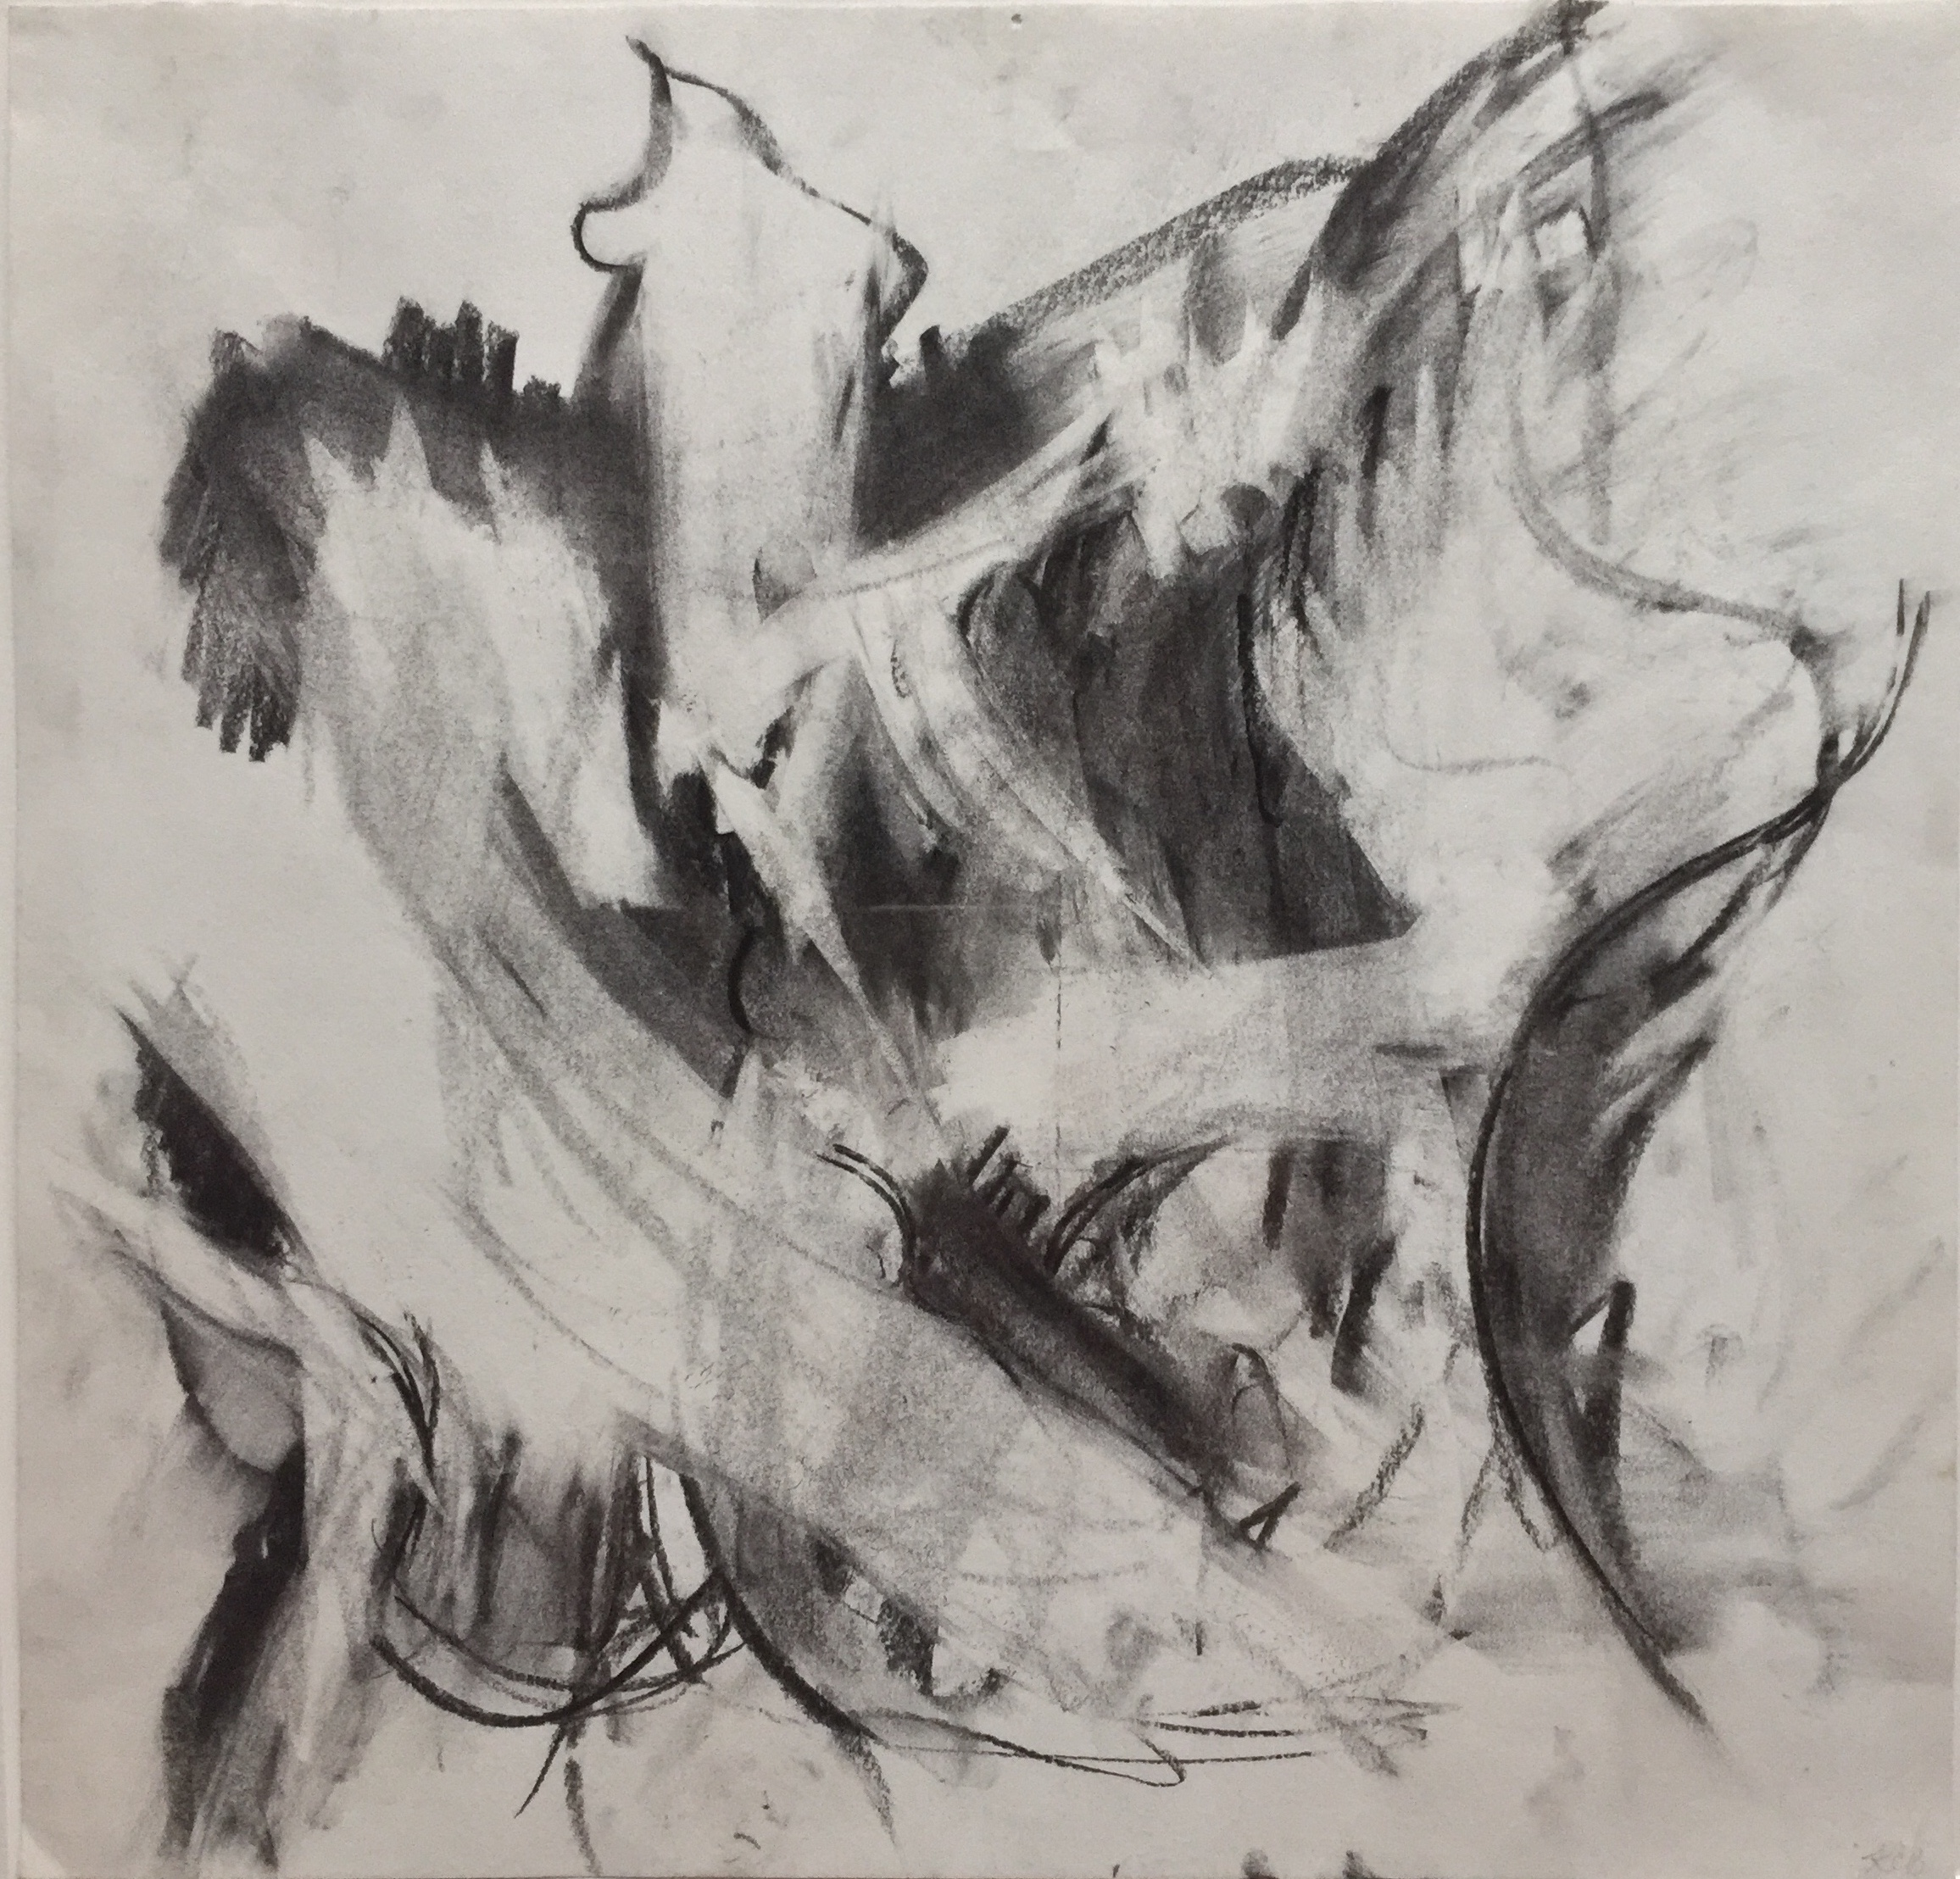 Untitled 2, charcoal on paper, Kristin Barton, .jpg